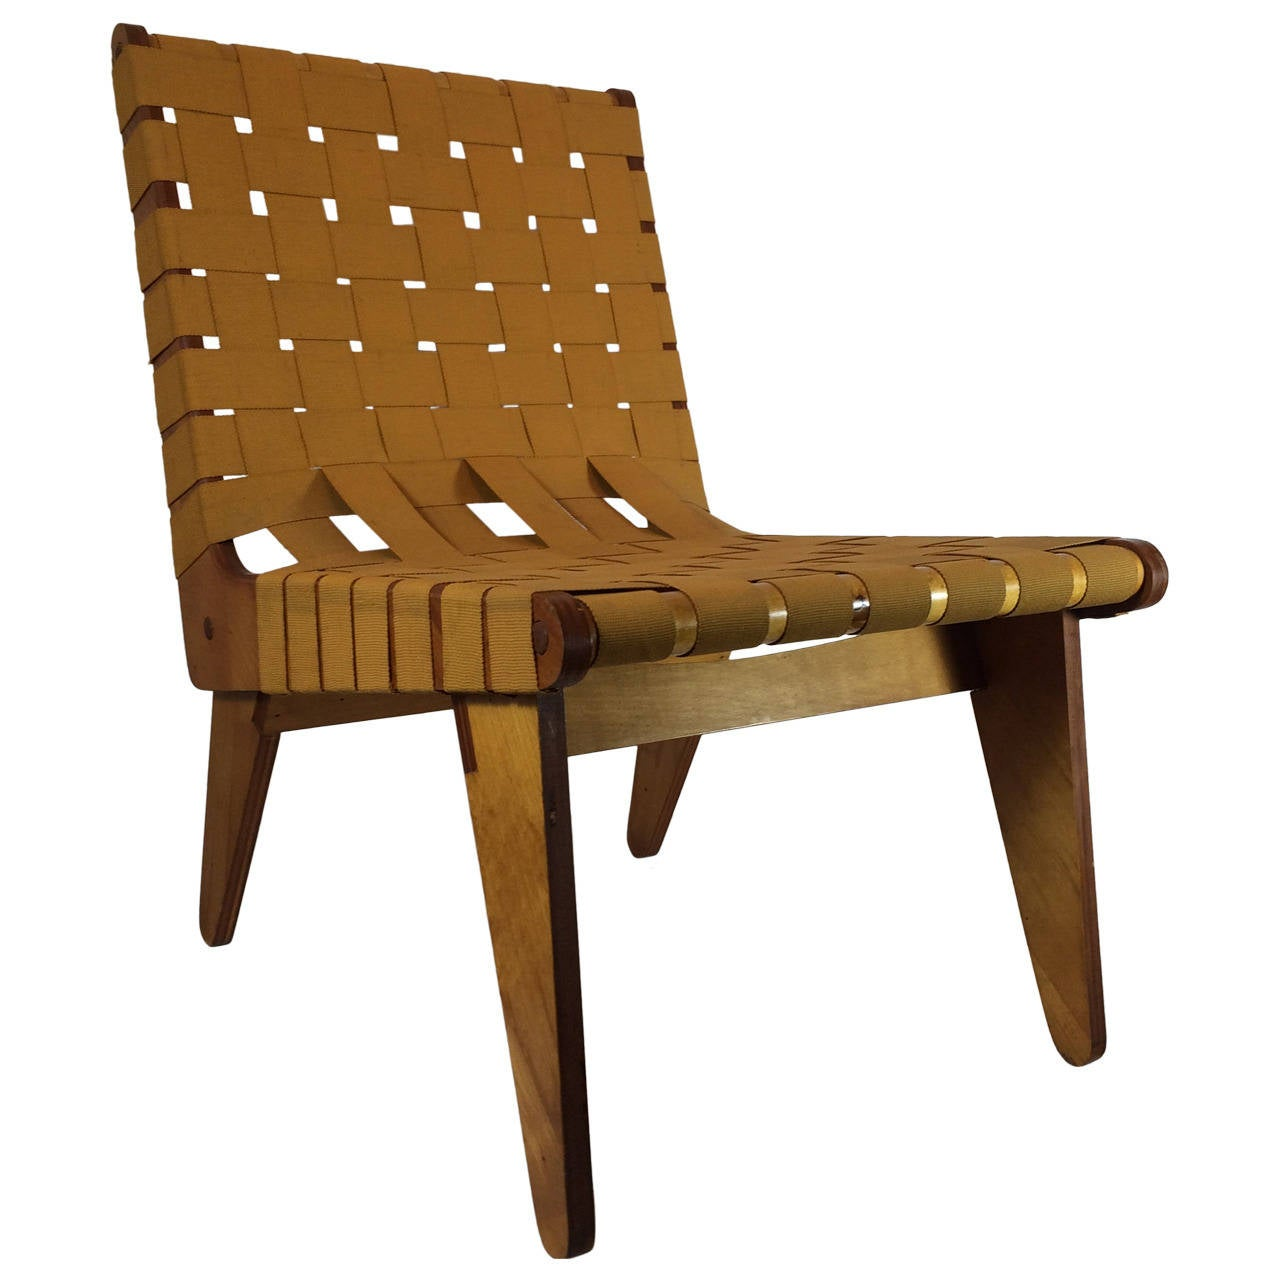 1949 Klaus Grabe Handmade Lounge Chair 1